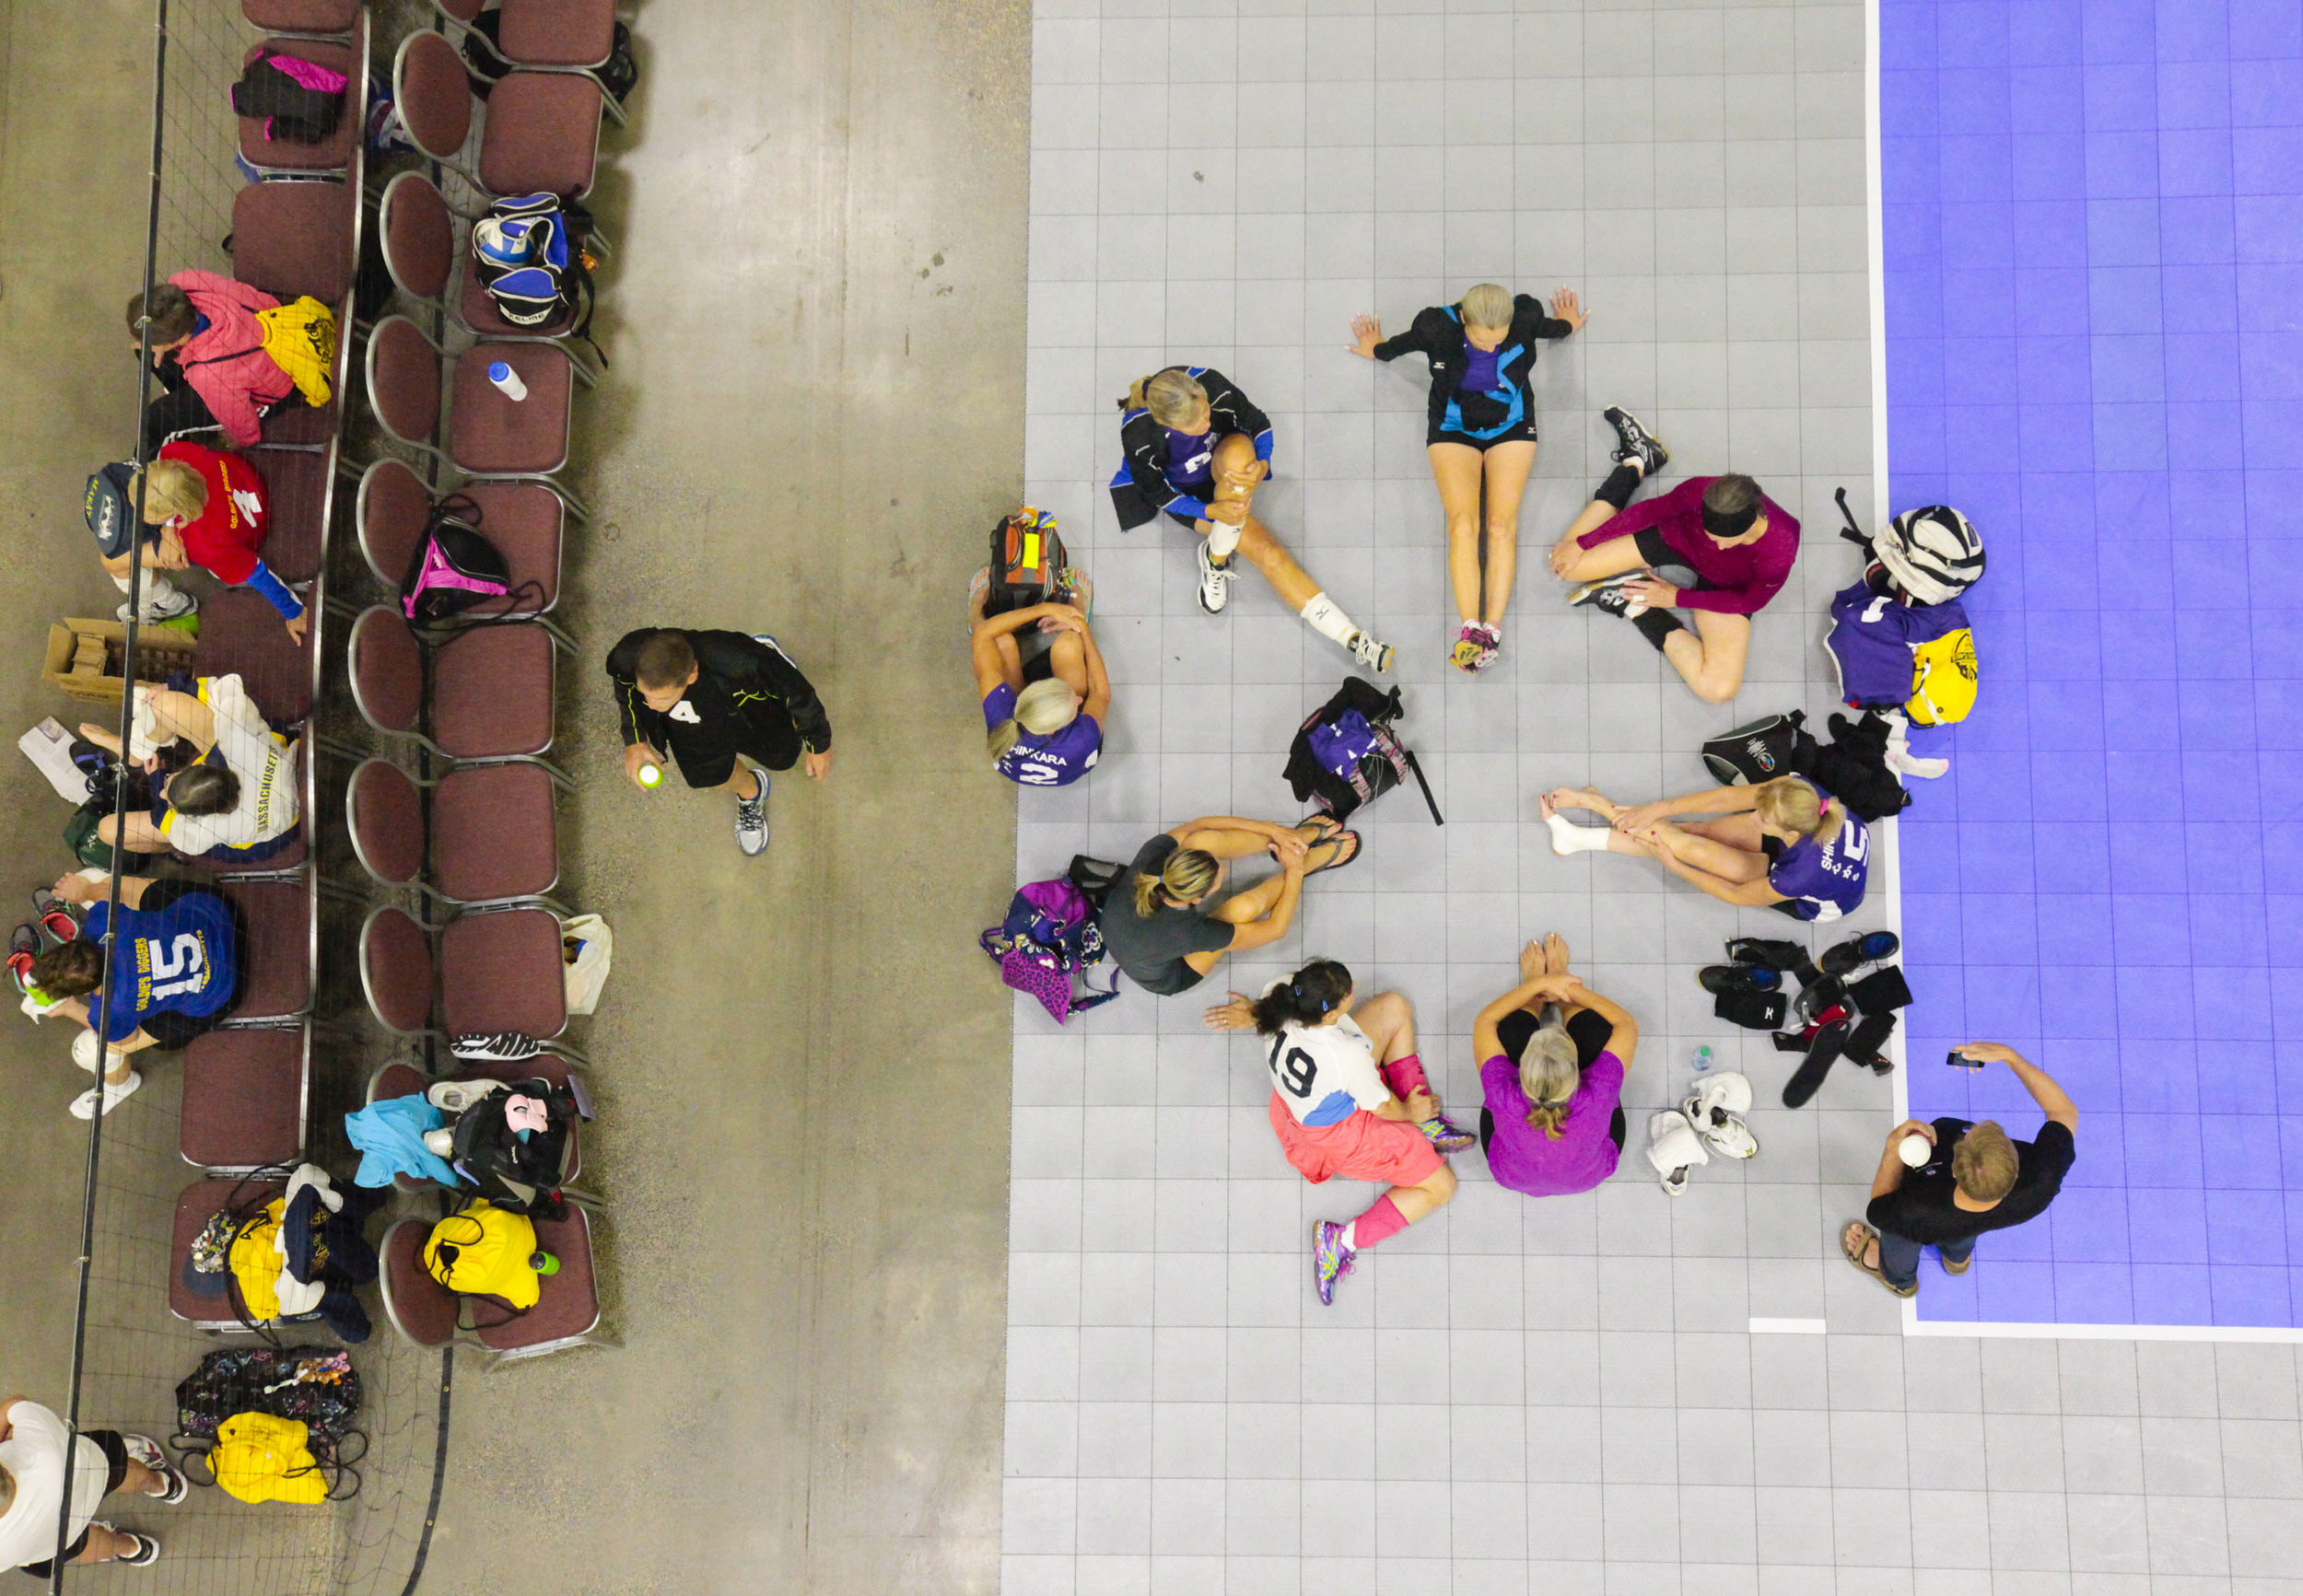 The Shinkara volleyball team relaxes after finishing a volleyball match that took place during the 2015 National Senior Games Volleyball Competiton on Jul. 15, 2015 in Minneapolis, MN.